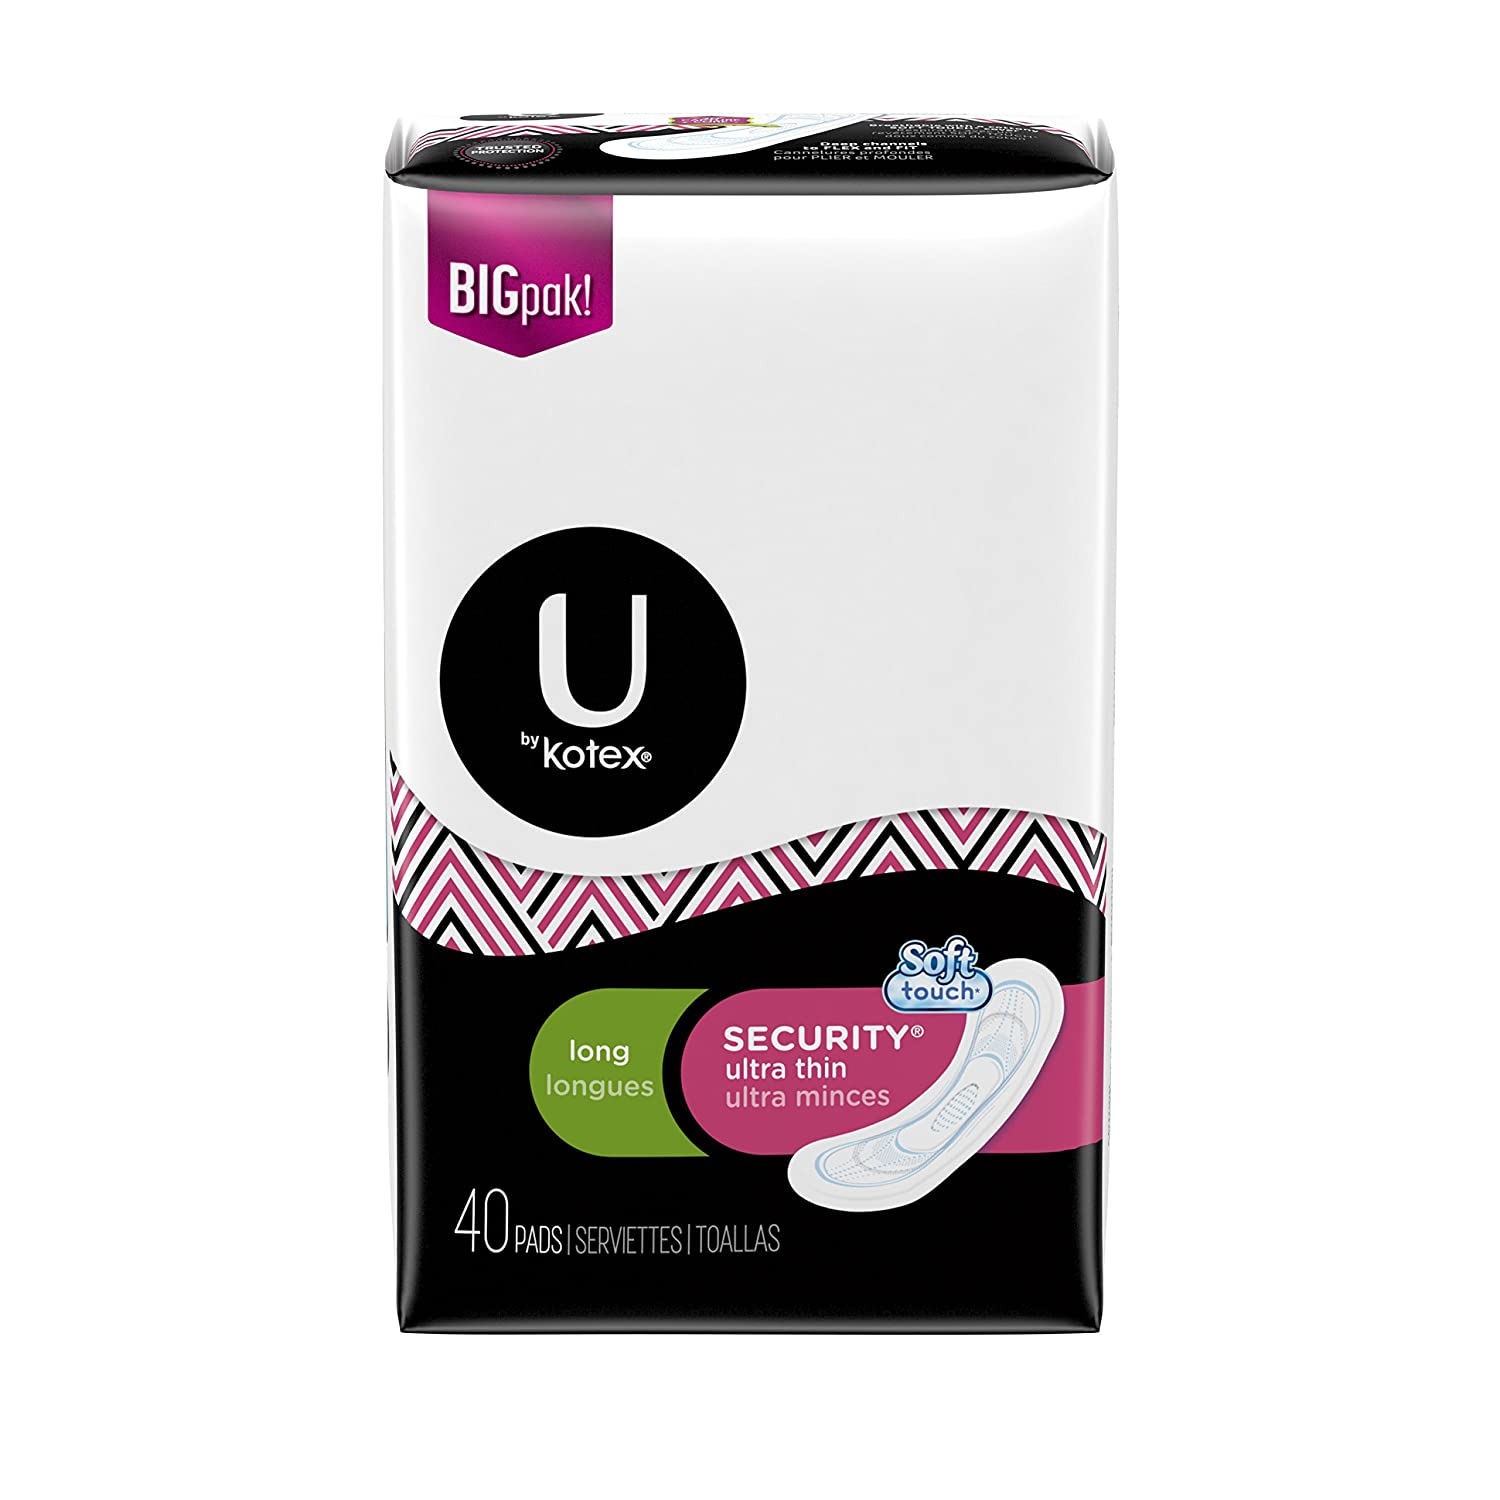 Amazon.com: U by Kotex Security Ultra Thin Pads, Long, Unscented, 40 ct: Health & Personal Care